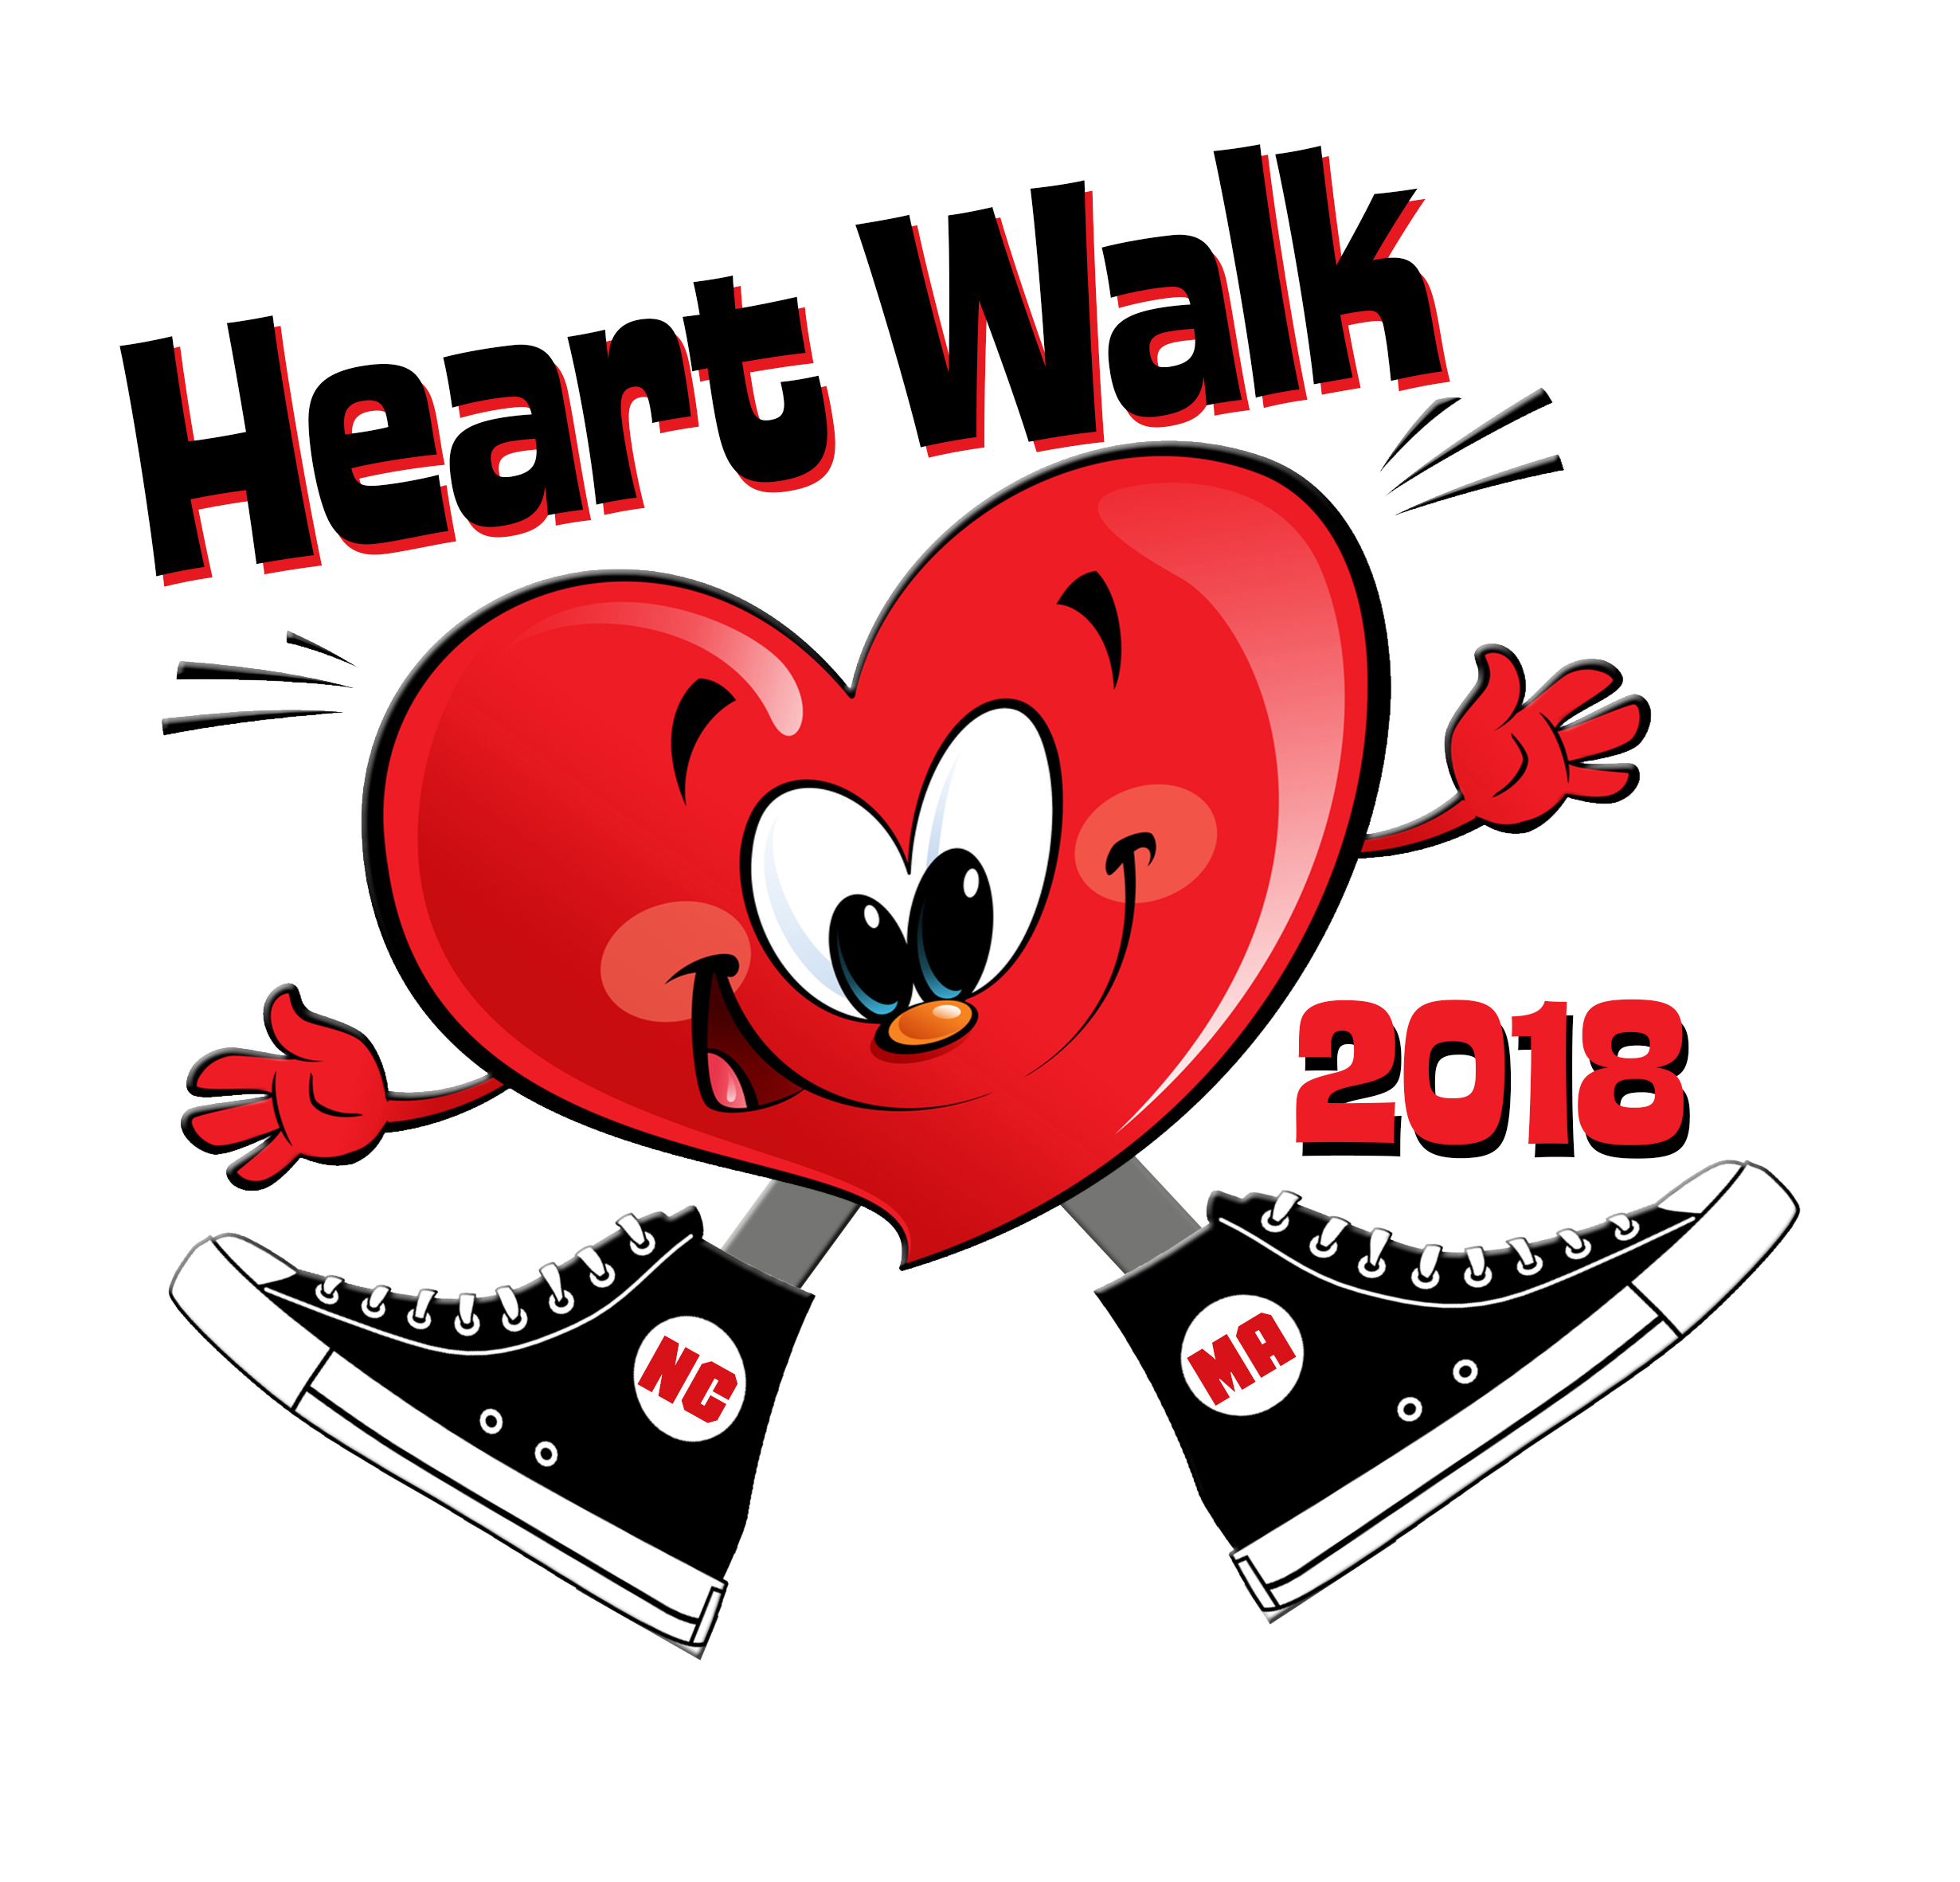 HEARWALK_FRONT